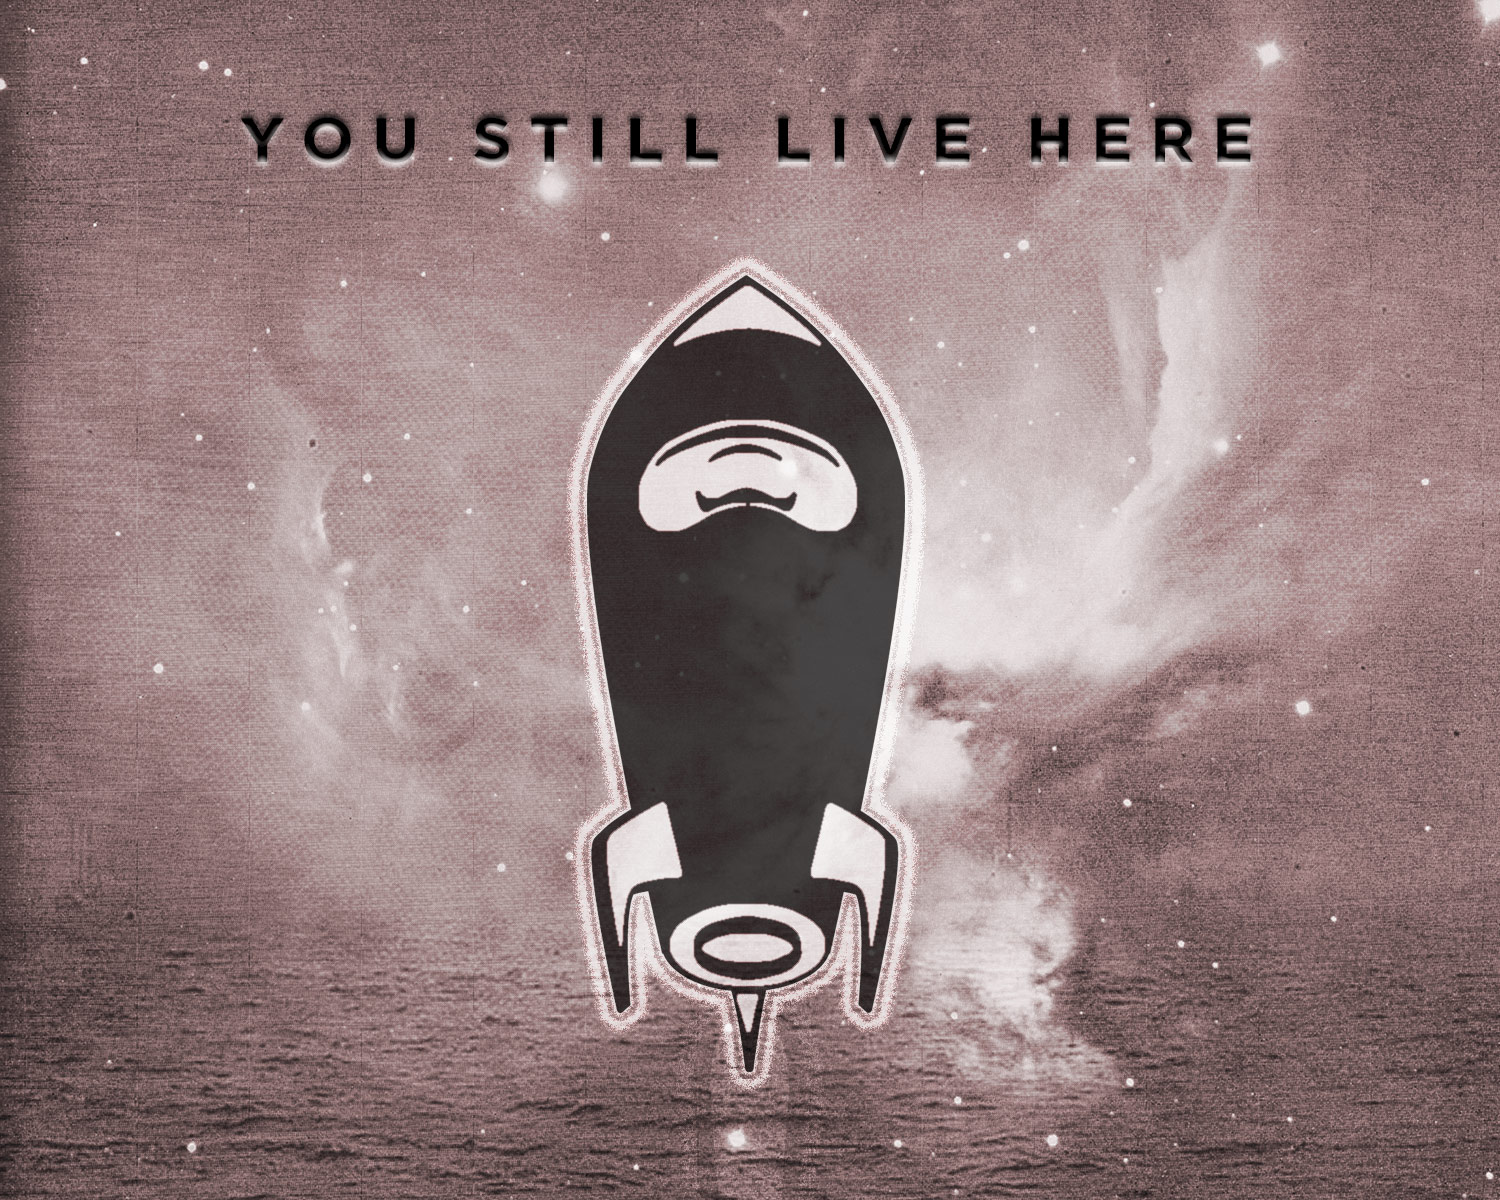 B_D_ +SEAGLASS - YOU STILL LIVE HERE